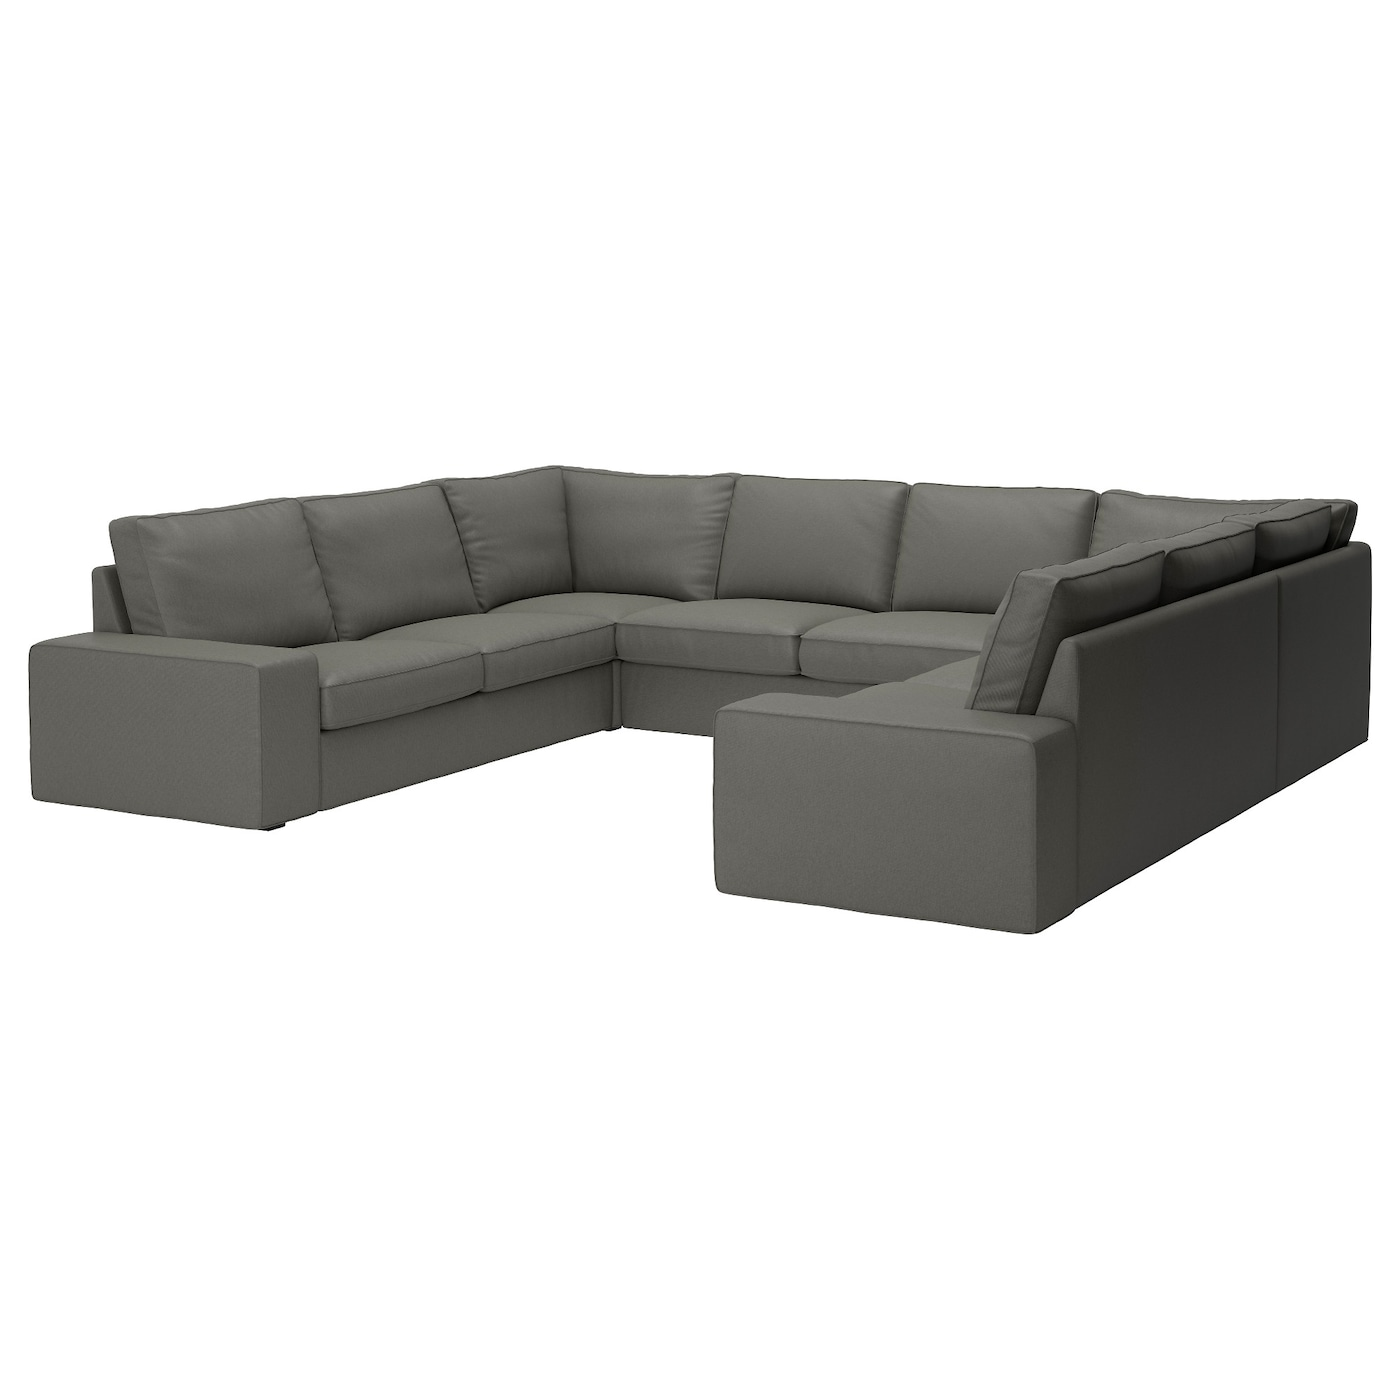 Schlafsofa ikea  KIVIK U-shaped sofa, 6 seat Borred grey-green - IKEA